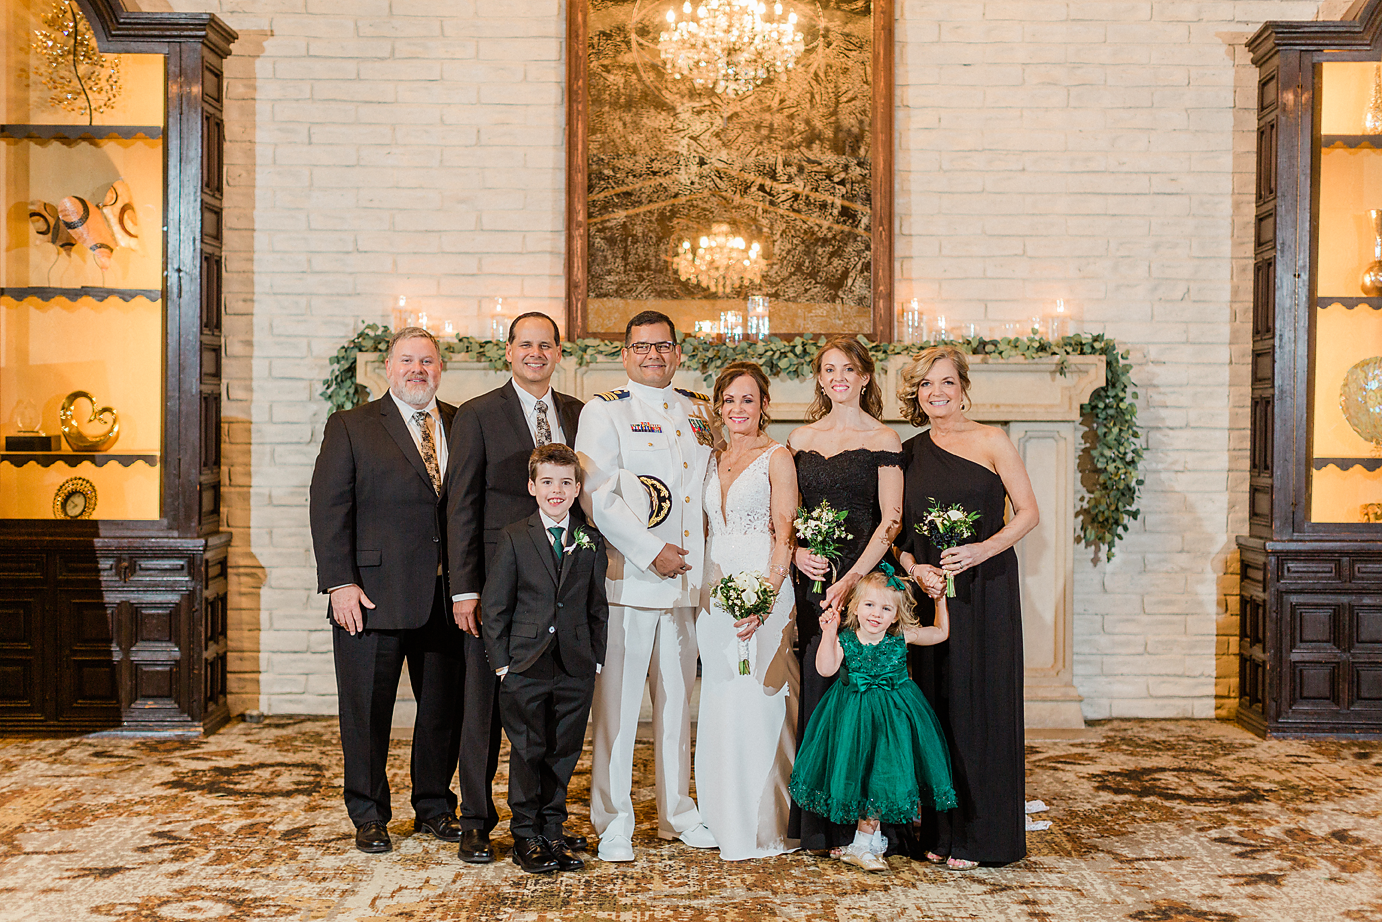 Dallas Wedding photography Las Colinas Country Club wedding party formal portrait Kate Marie Portraiture.png